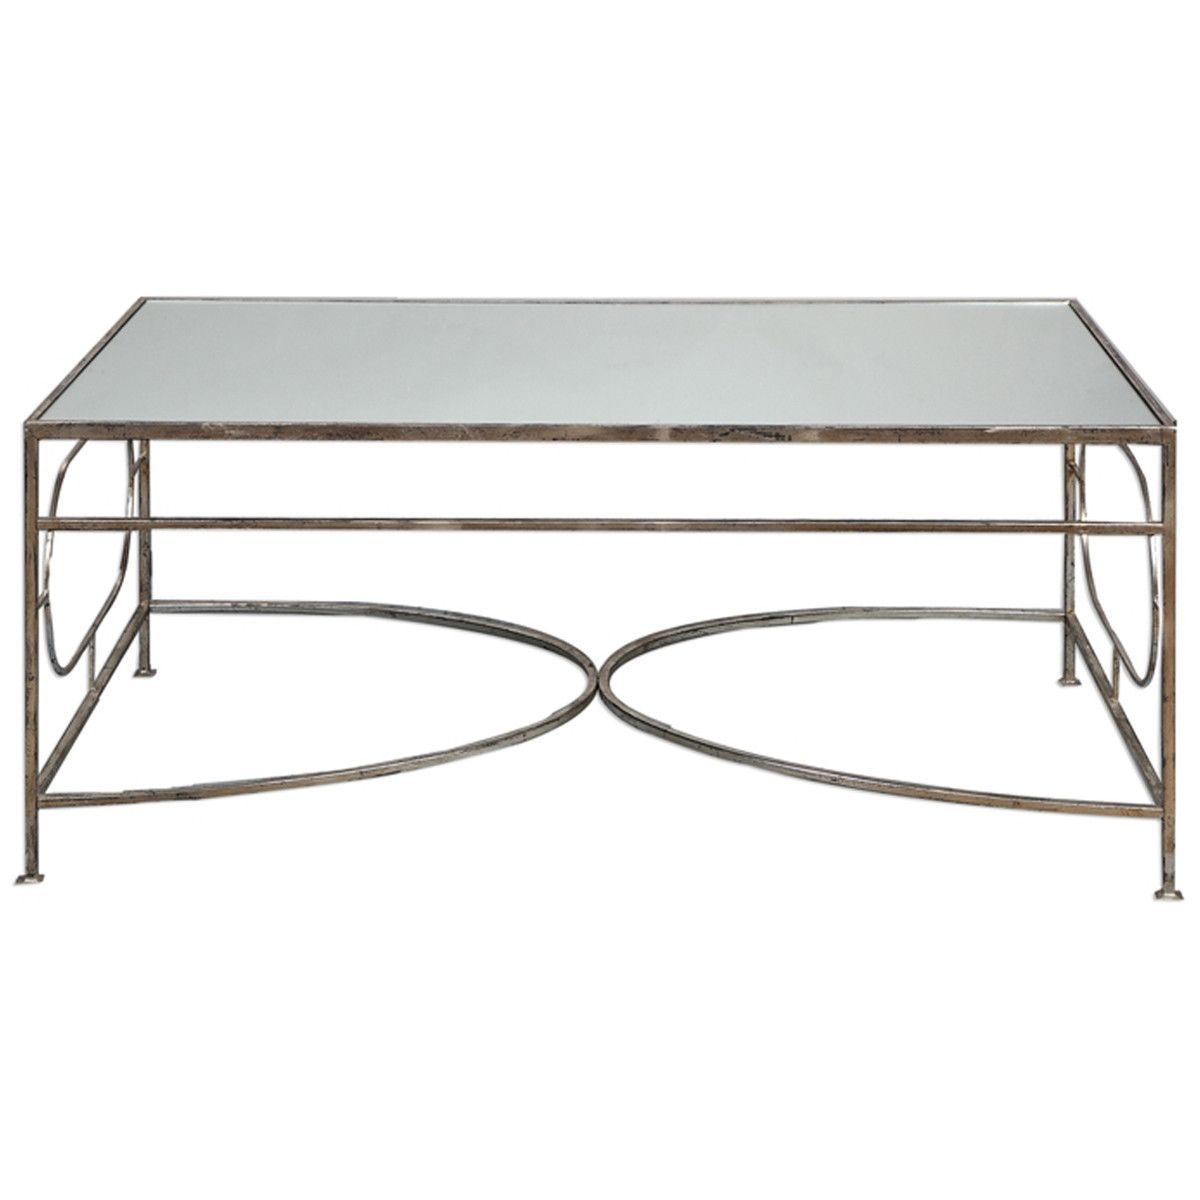 Uttermost luano distressed antique silver coffee table silver uttermost luano distressed antique silver coffee table geotapseo Image collections